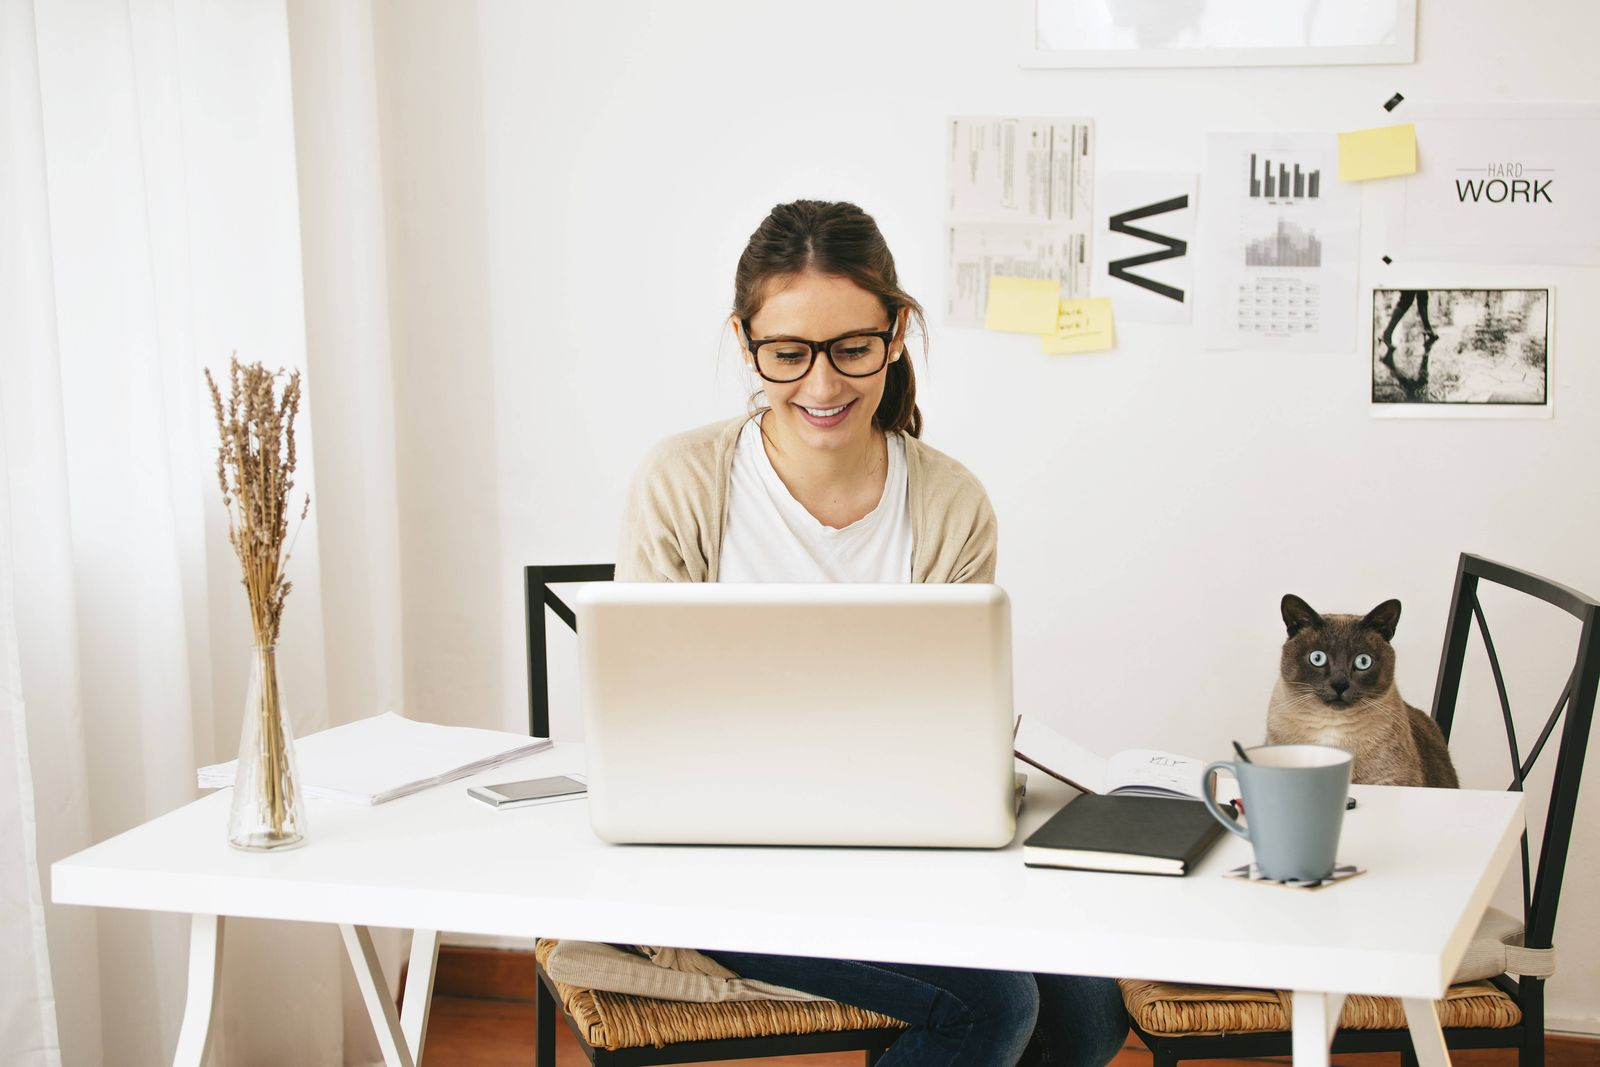 Woman and her cat sitting at desk model released property released PUBLICATIONxINxGERxSUIxAUTxHUNxON